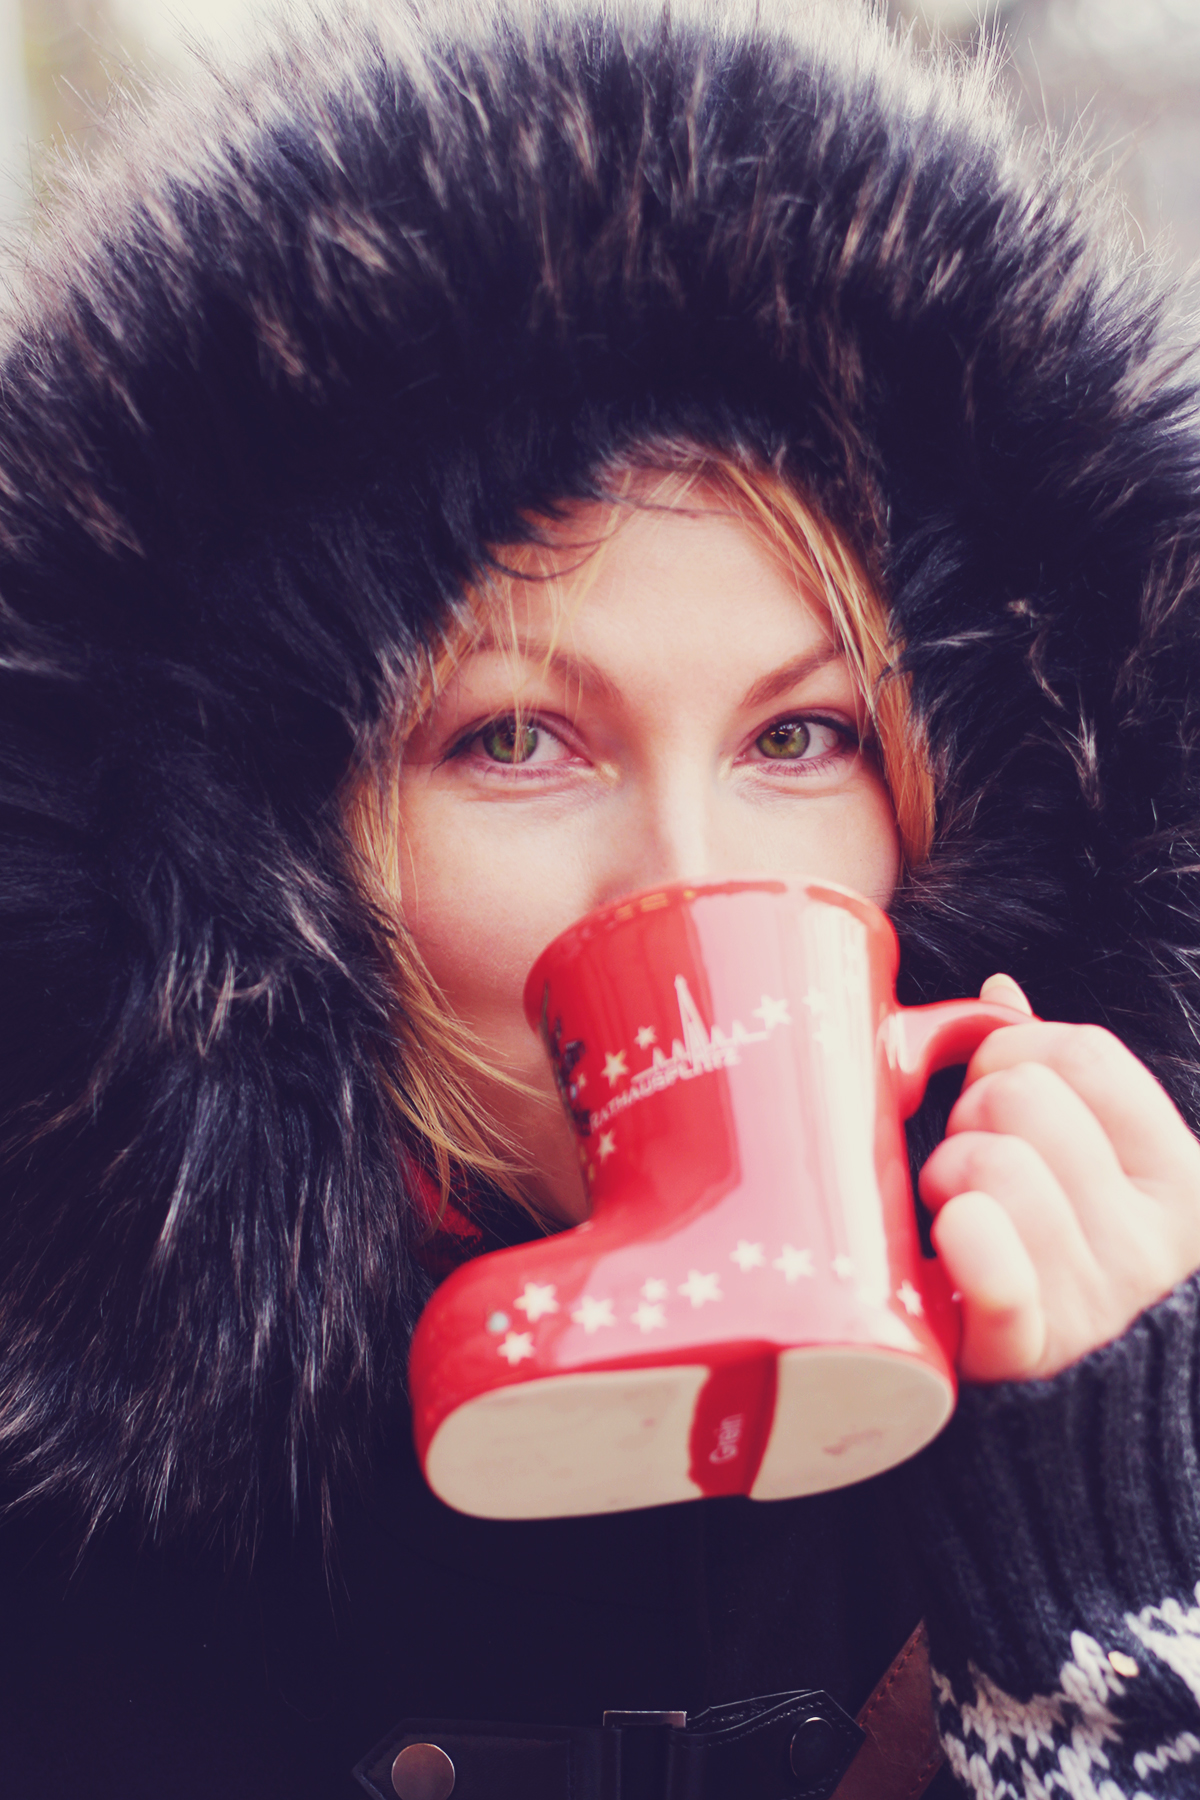 Vienna Christmas Market, me drinking mulled wine, faux-fur, winter, traditional austrian hot beverage cup